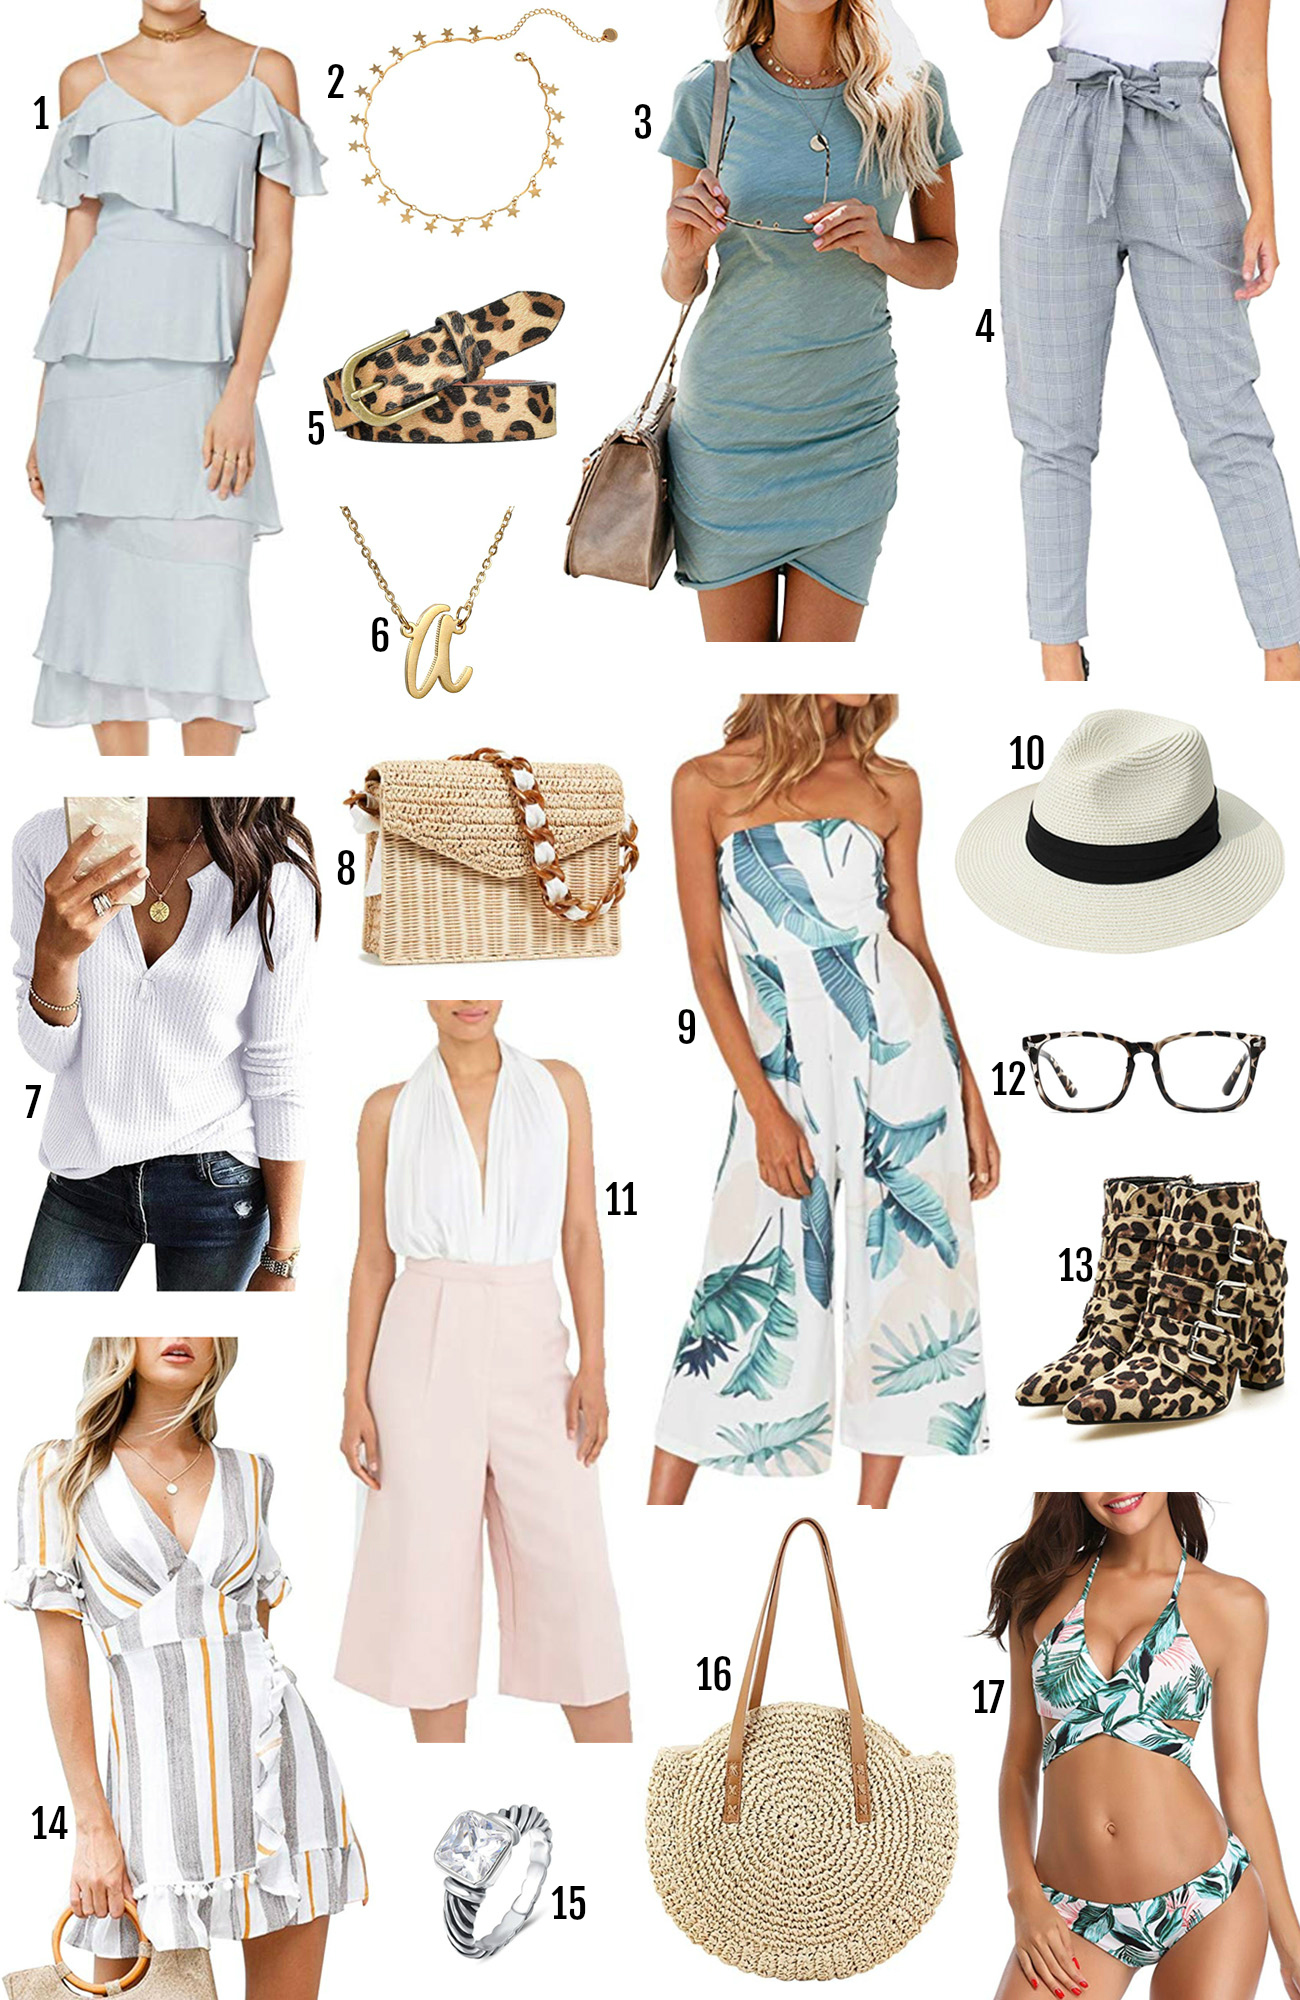 Amazon Fashion Shop Amazon Spring 2019 Fashion Finds Mash Elle